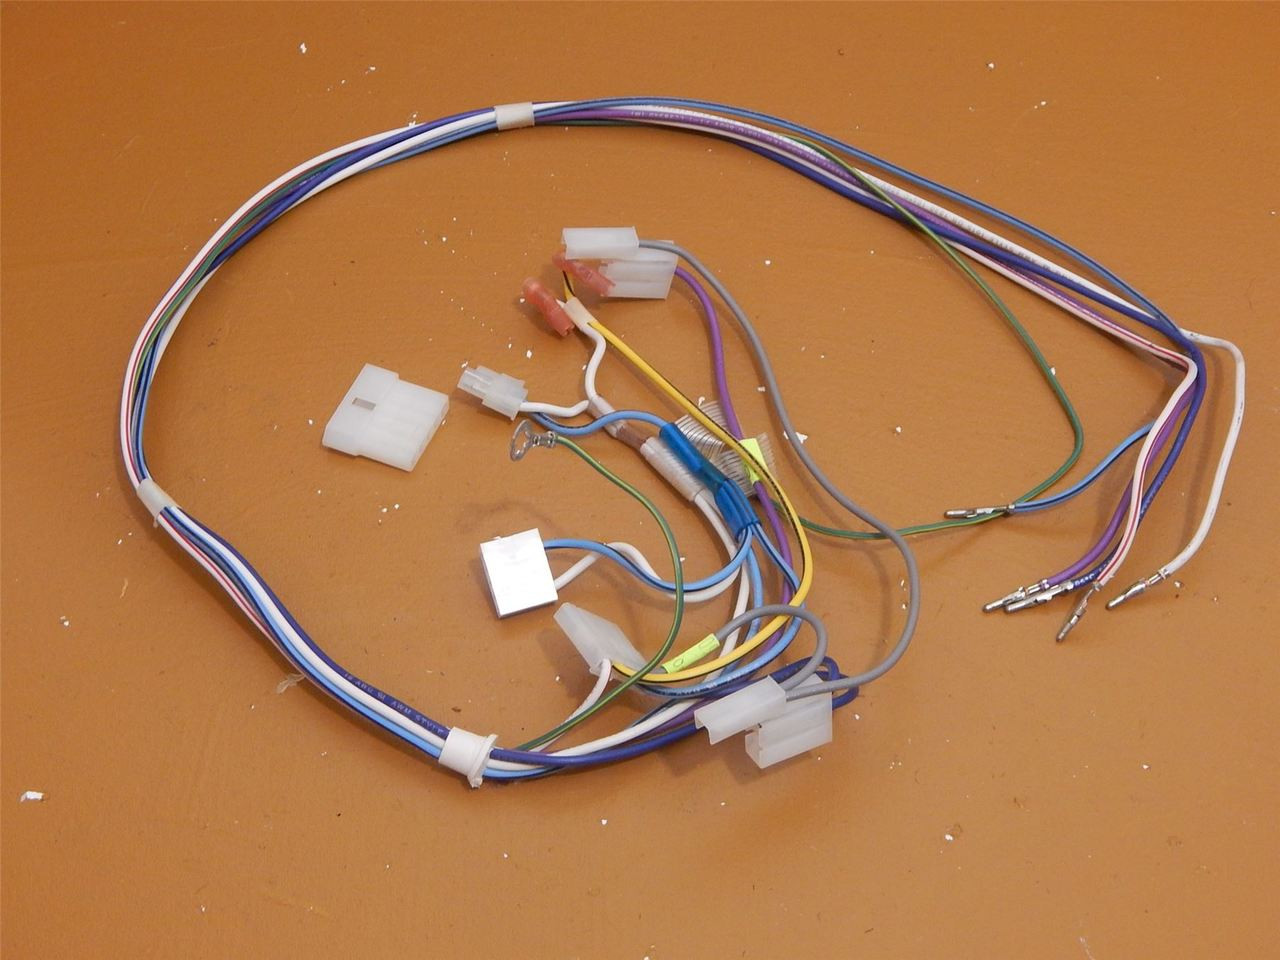 hight resolution of whirlpool side by side refrigerator ed5phexnq00 dispenser wire harness 2311641 ice cold beer appliance parts